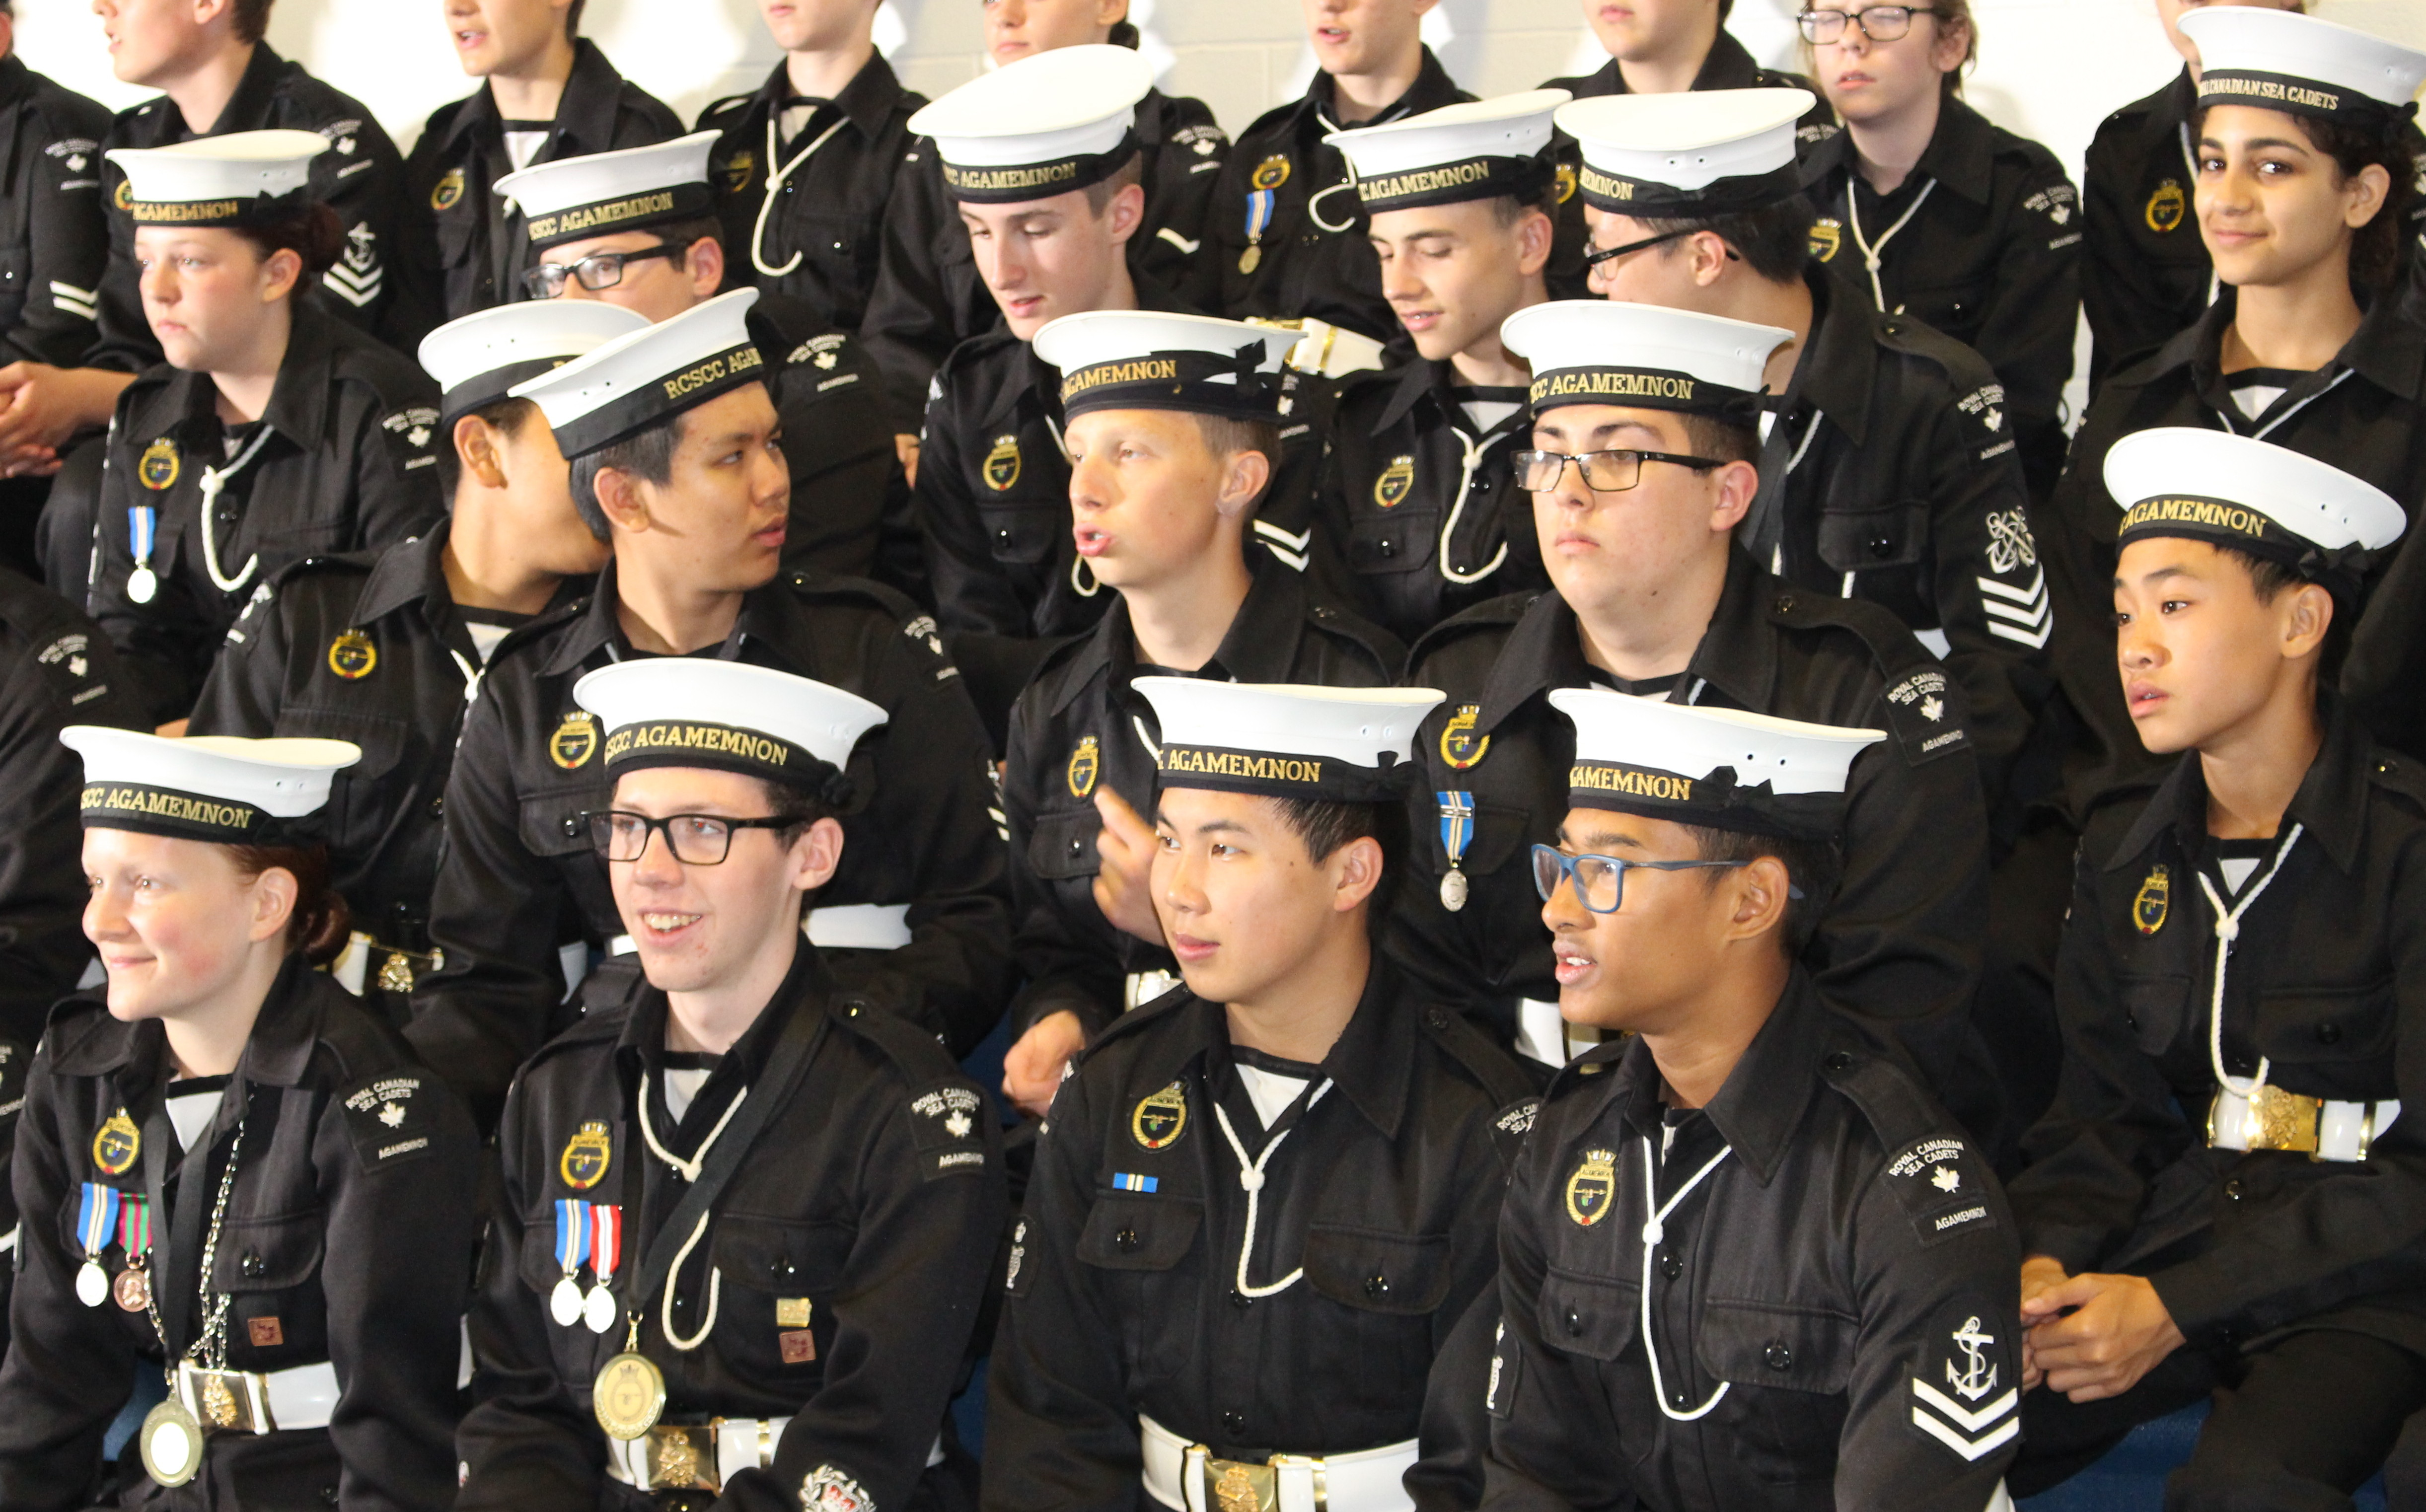 Royal Canadian Sea Cadet Corps 95th Annual Review at HMCS Hunter in Windsor May 30, 2015. (Photo by Adelle Loiselle)